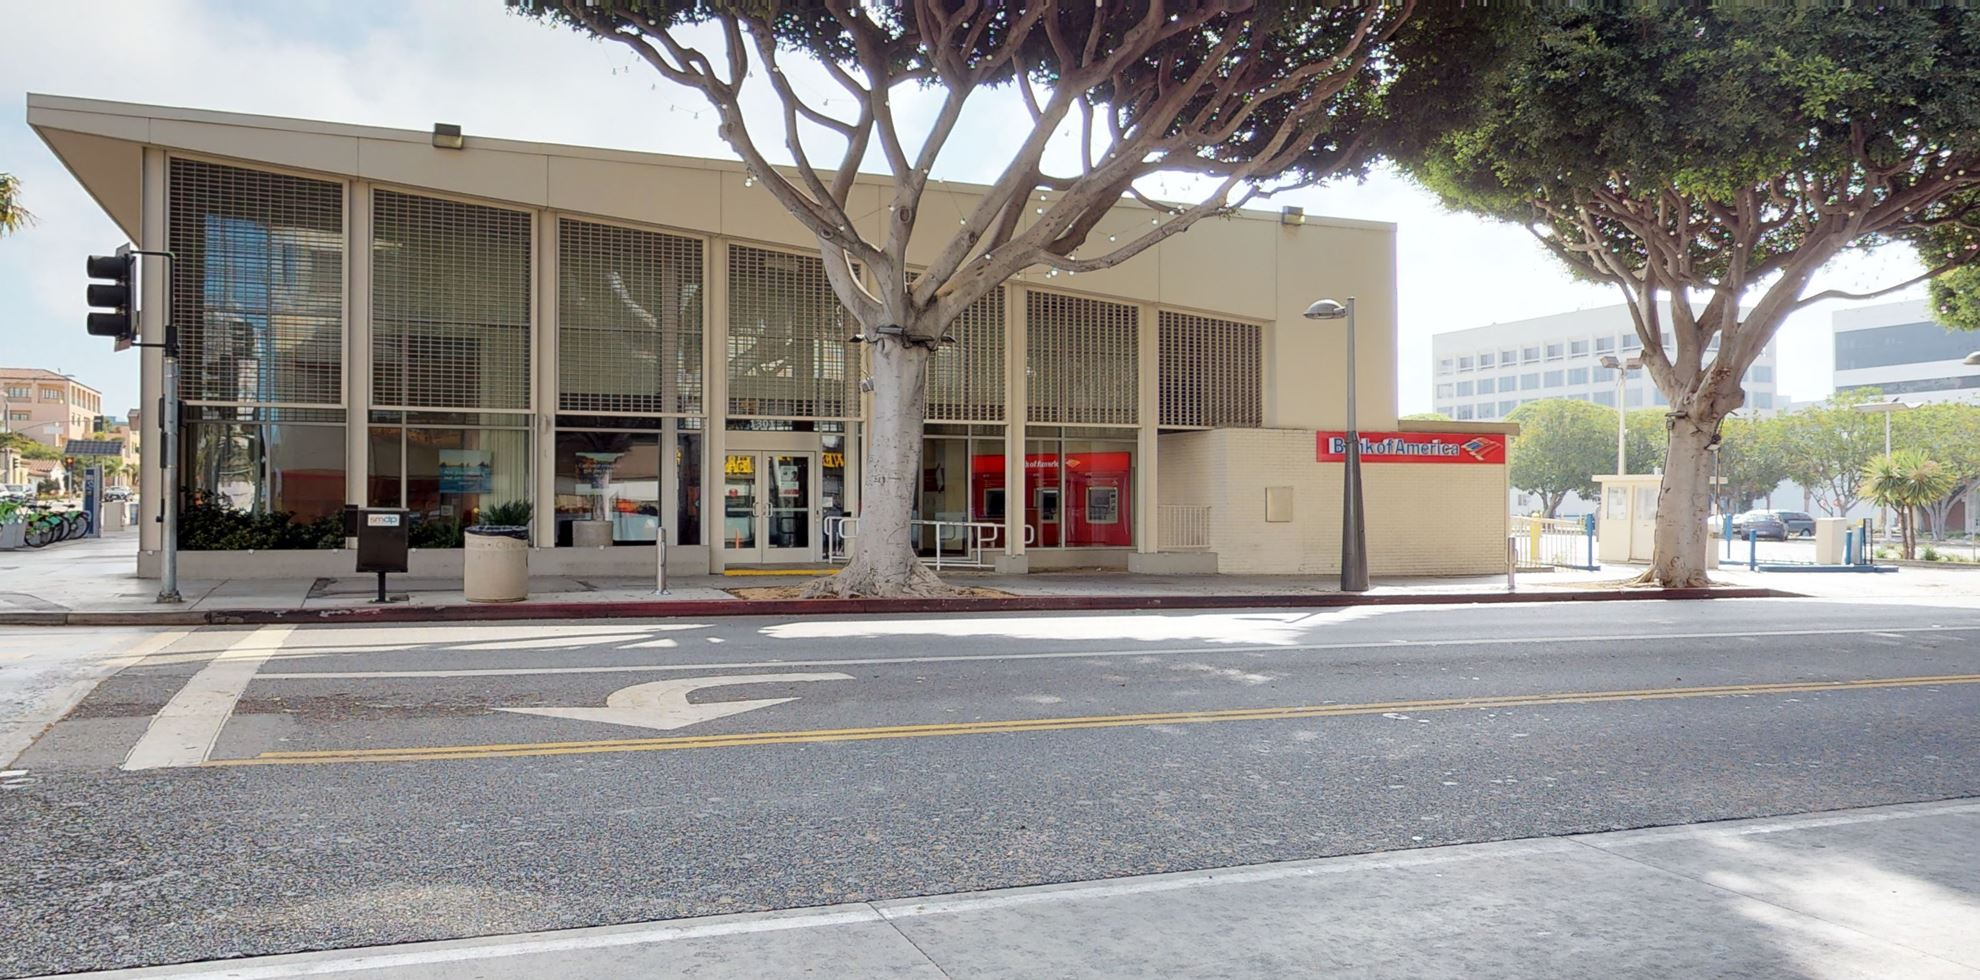 Bank of America financial center with walk-up ATM   1301 4th St, Santa Monica, CA 90401